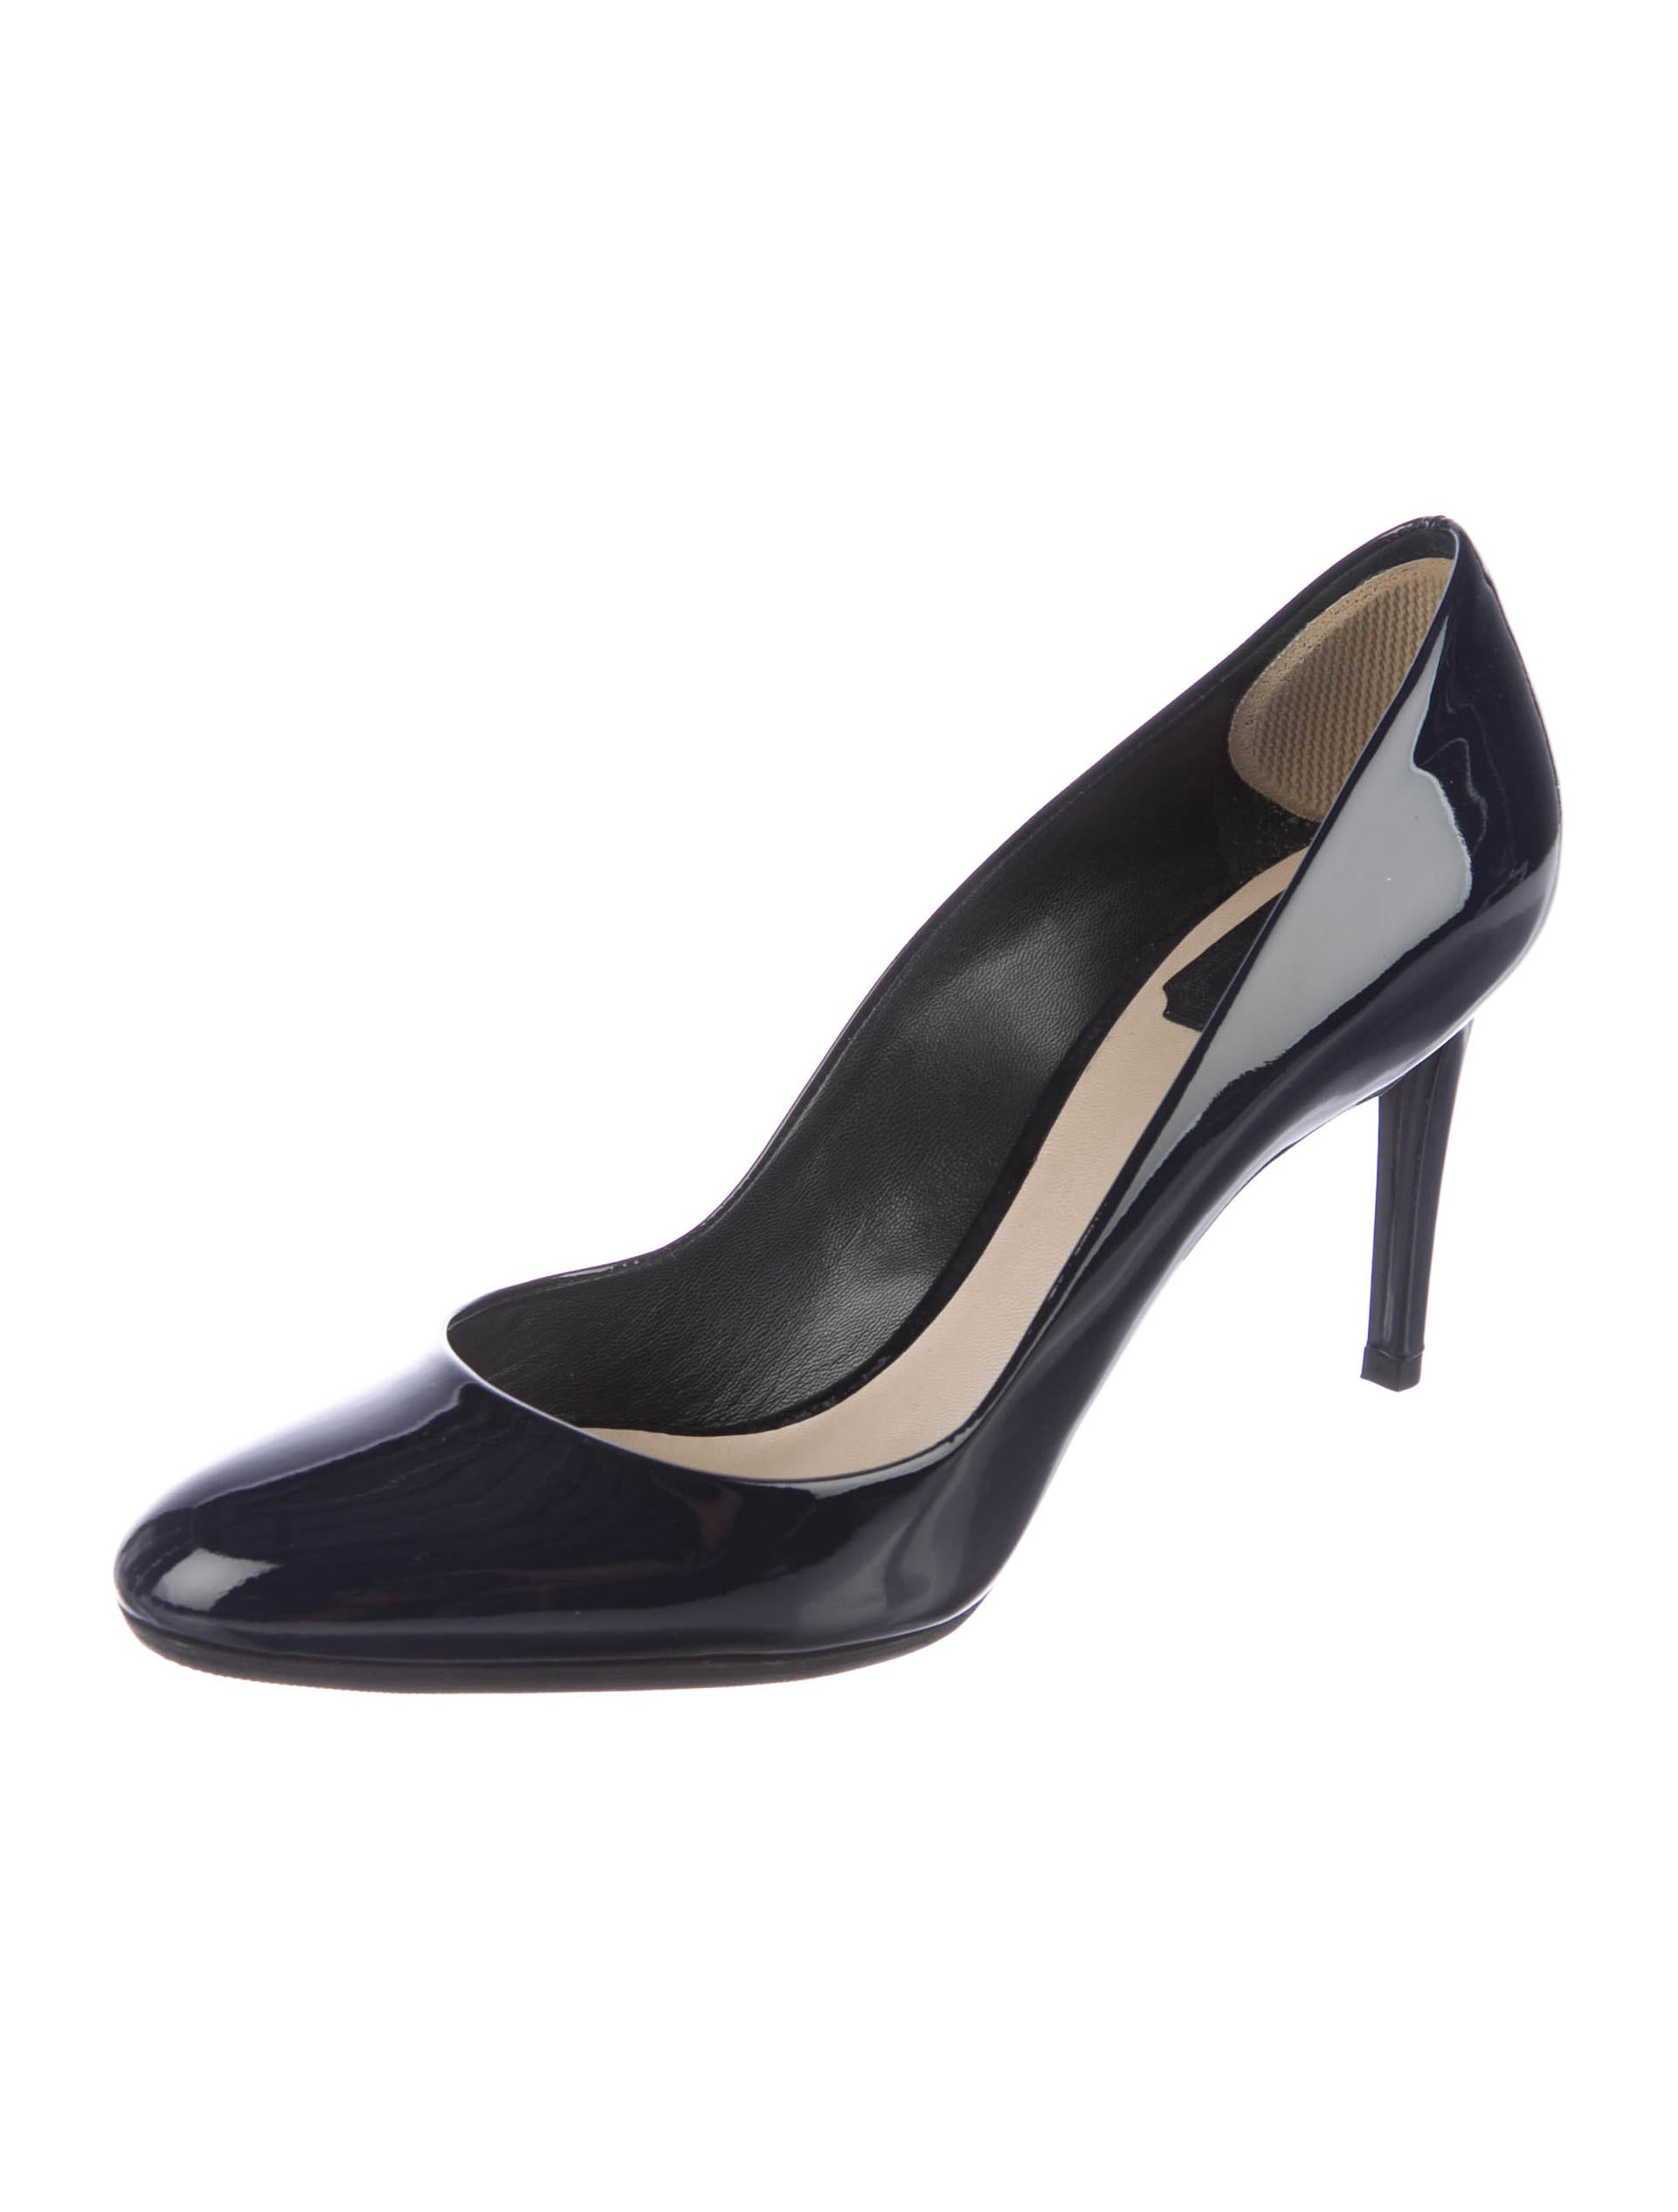 Christian Dior Sublime Patent Leather Pumps cheap sale store quality from china wholesale free shipping sast vAXjvj5qo